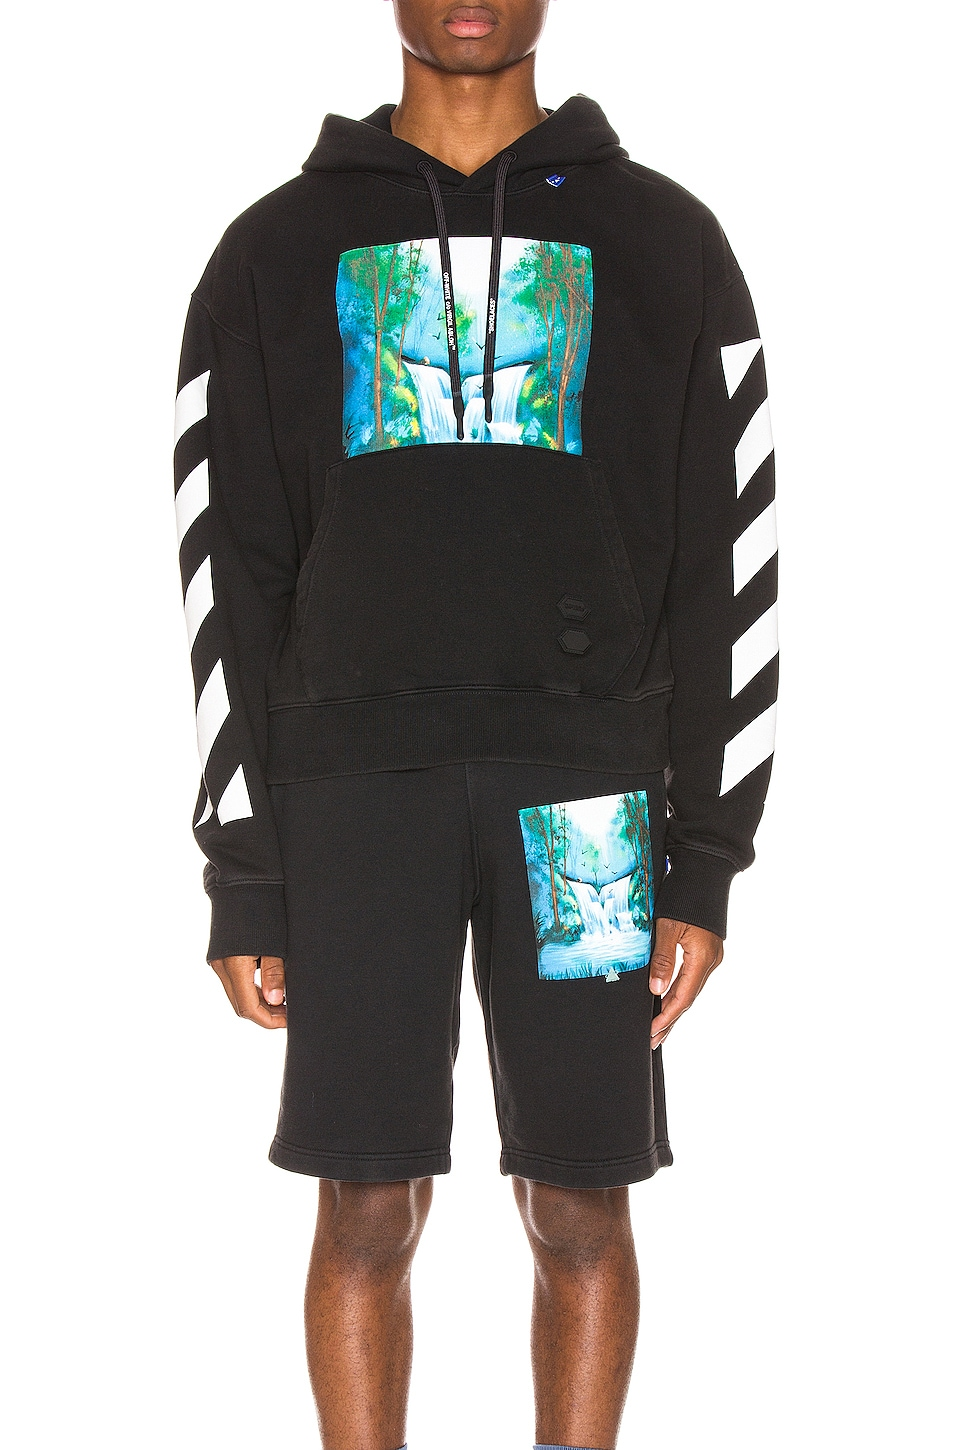 OFF-WHITE Diag Waterfall Hoodie in Black Multi